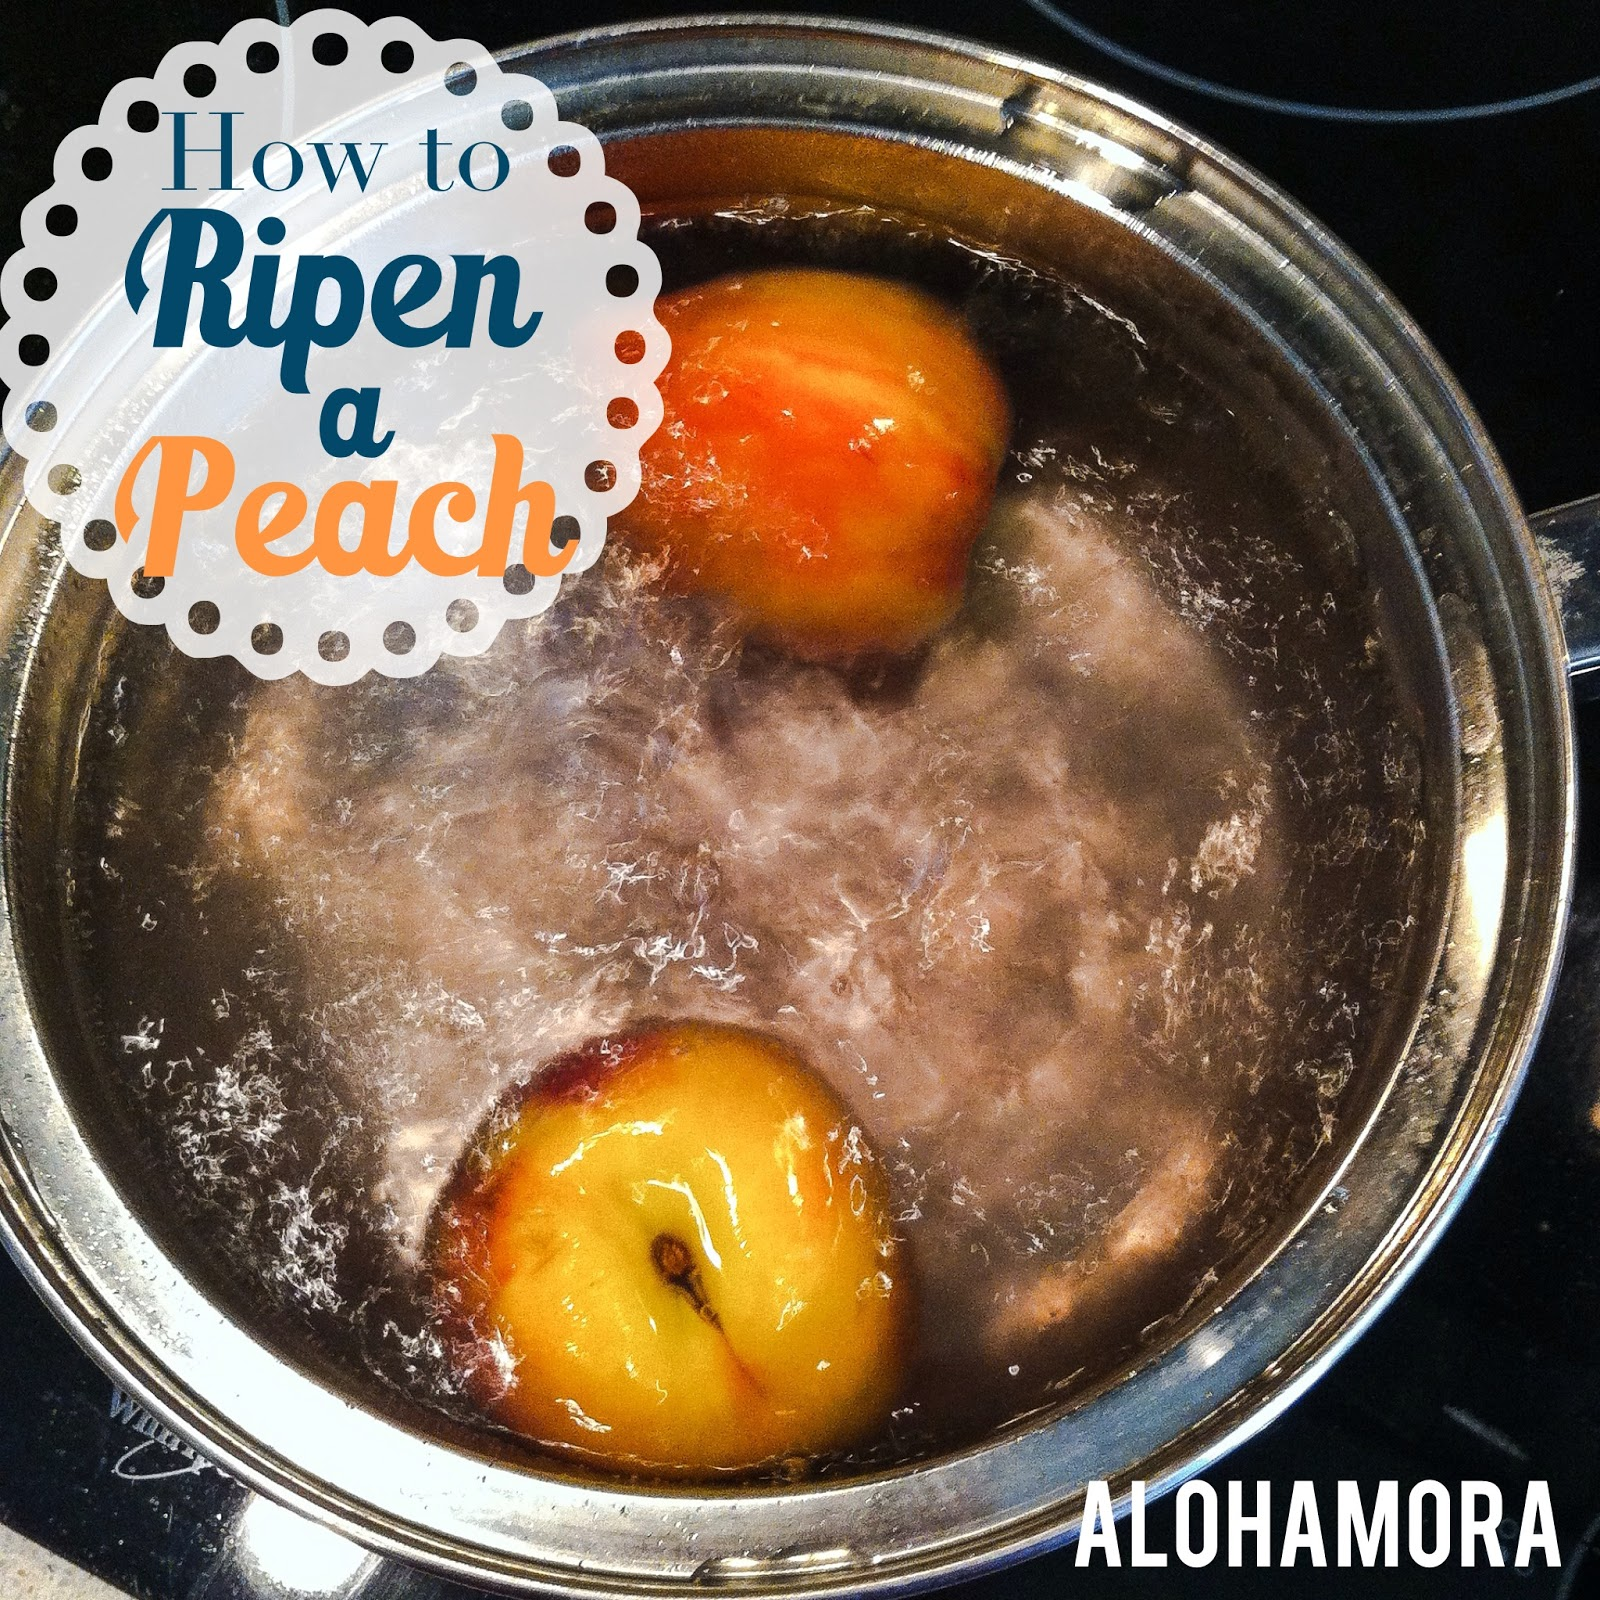 How to Ripen a Peach two different ways.  You can eat or bake with these peaches. Alohamora Open a Book http://www.alohamoraopenabook.blogspot.com/